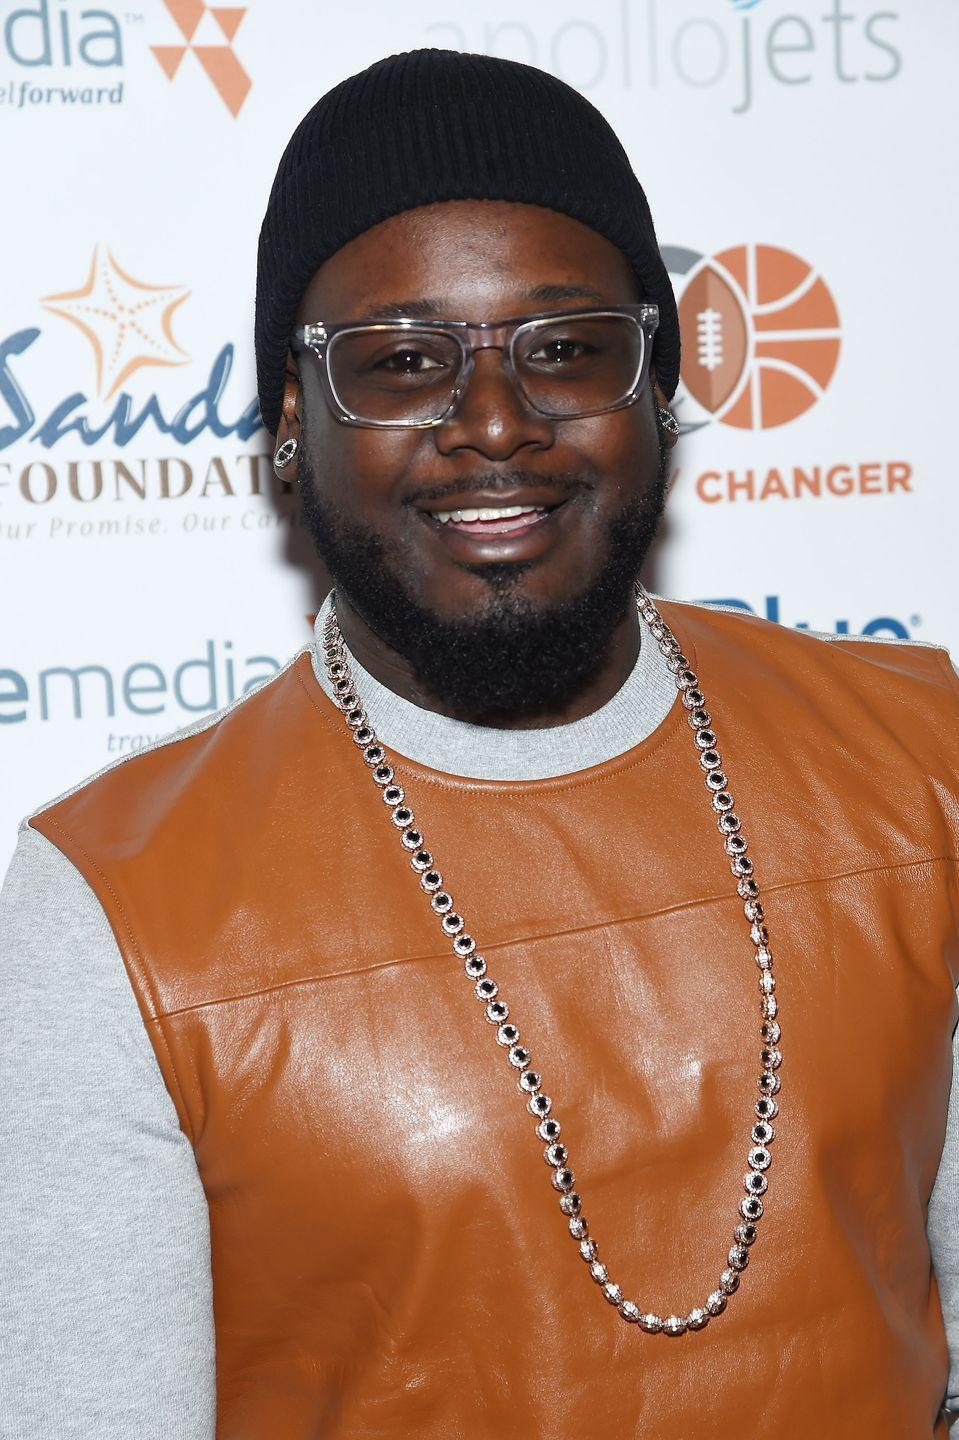 "<p>While T-Pain didn't <em>technically </em>work at McDonald's, he revealed to <em><a href=""https://www.today.com/popculture/t-pain-almost-ended-working-mcdonald-s-wbna19114035#.VDJGjPldU78"" rel=""nofollow noopener"" target=""_blank"" data-ylk=""slk:Today"" class=""link rapid-noclick-resp"">Today</a> </em>he almost did: ""The most horrible time was the day that Akon called me. He called me right when I went to get my application from McDonald's.""</p>"